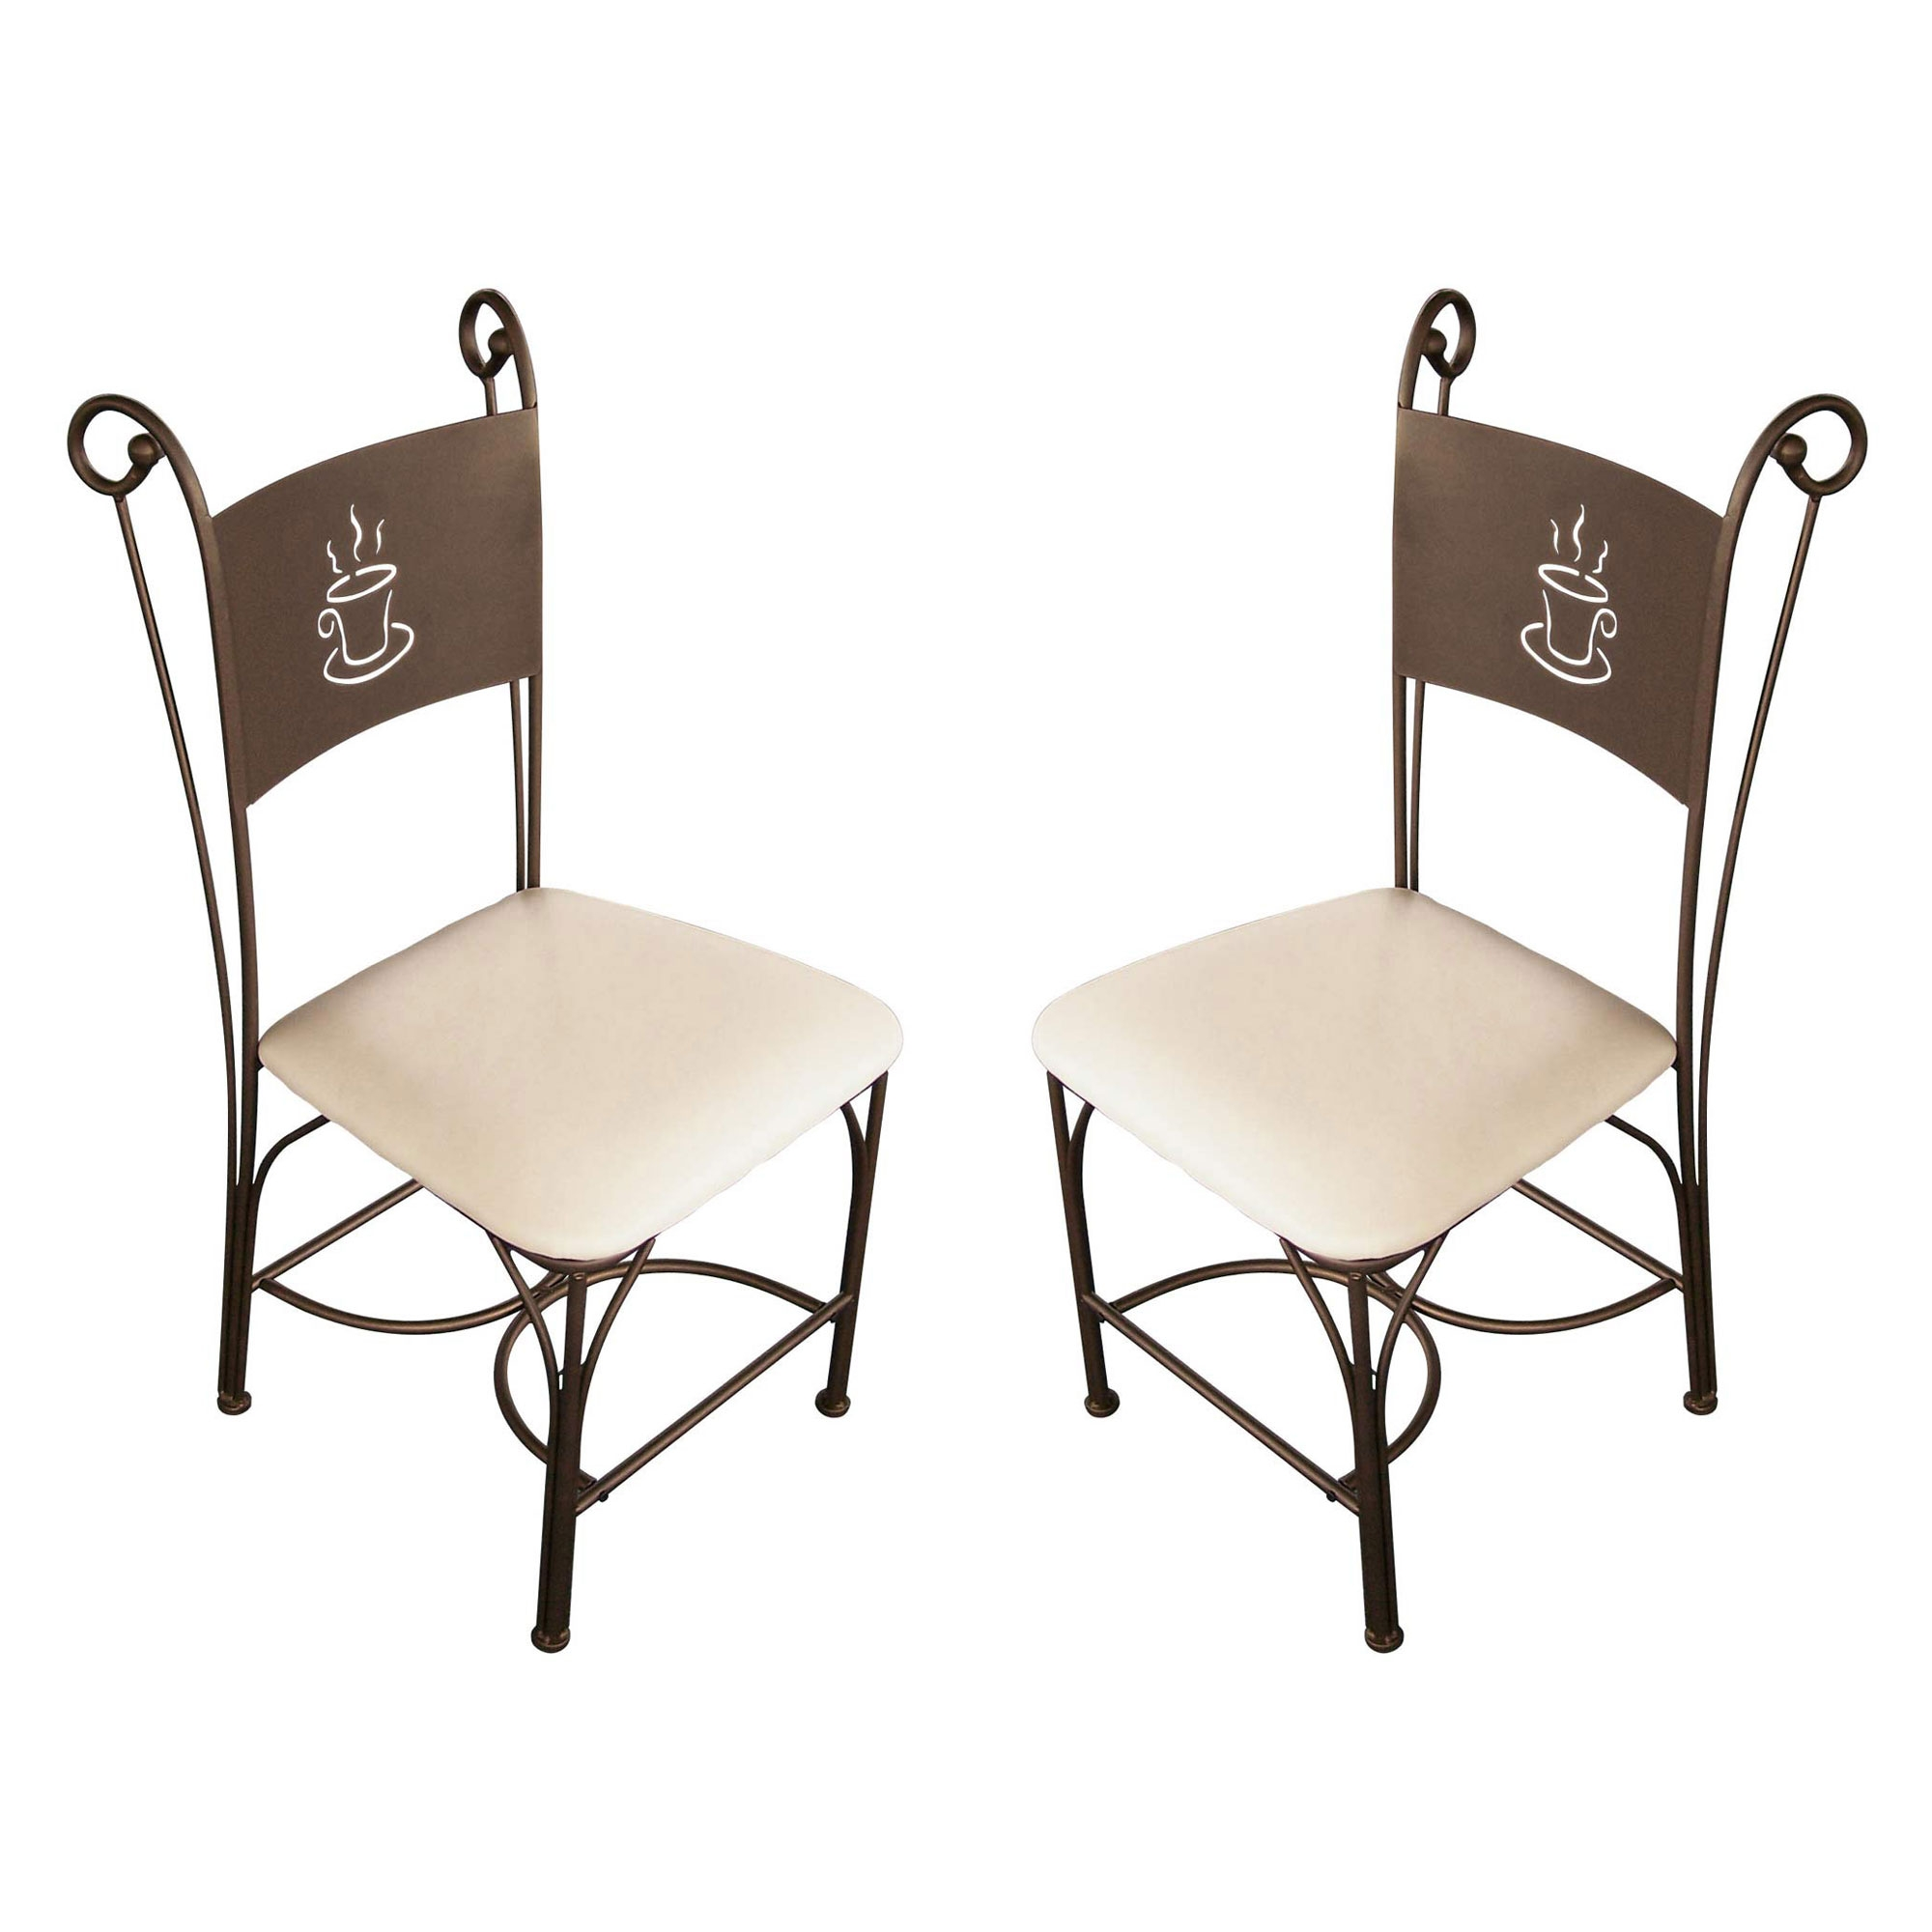 Chaise de cuisine en fer forg bronze coffee for Chaise table de cuisine